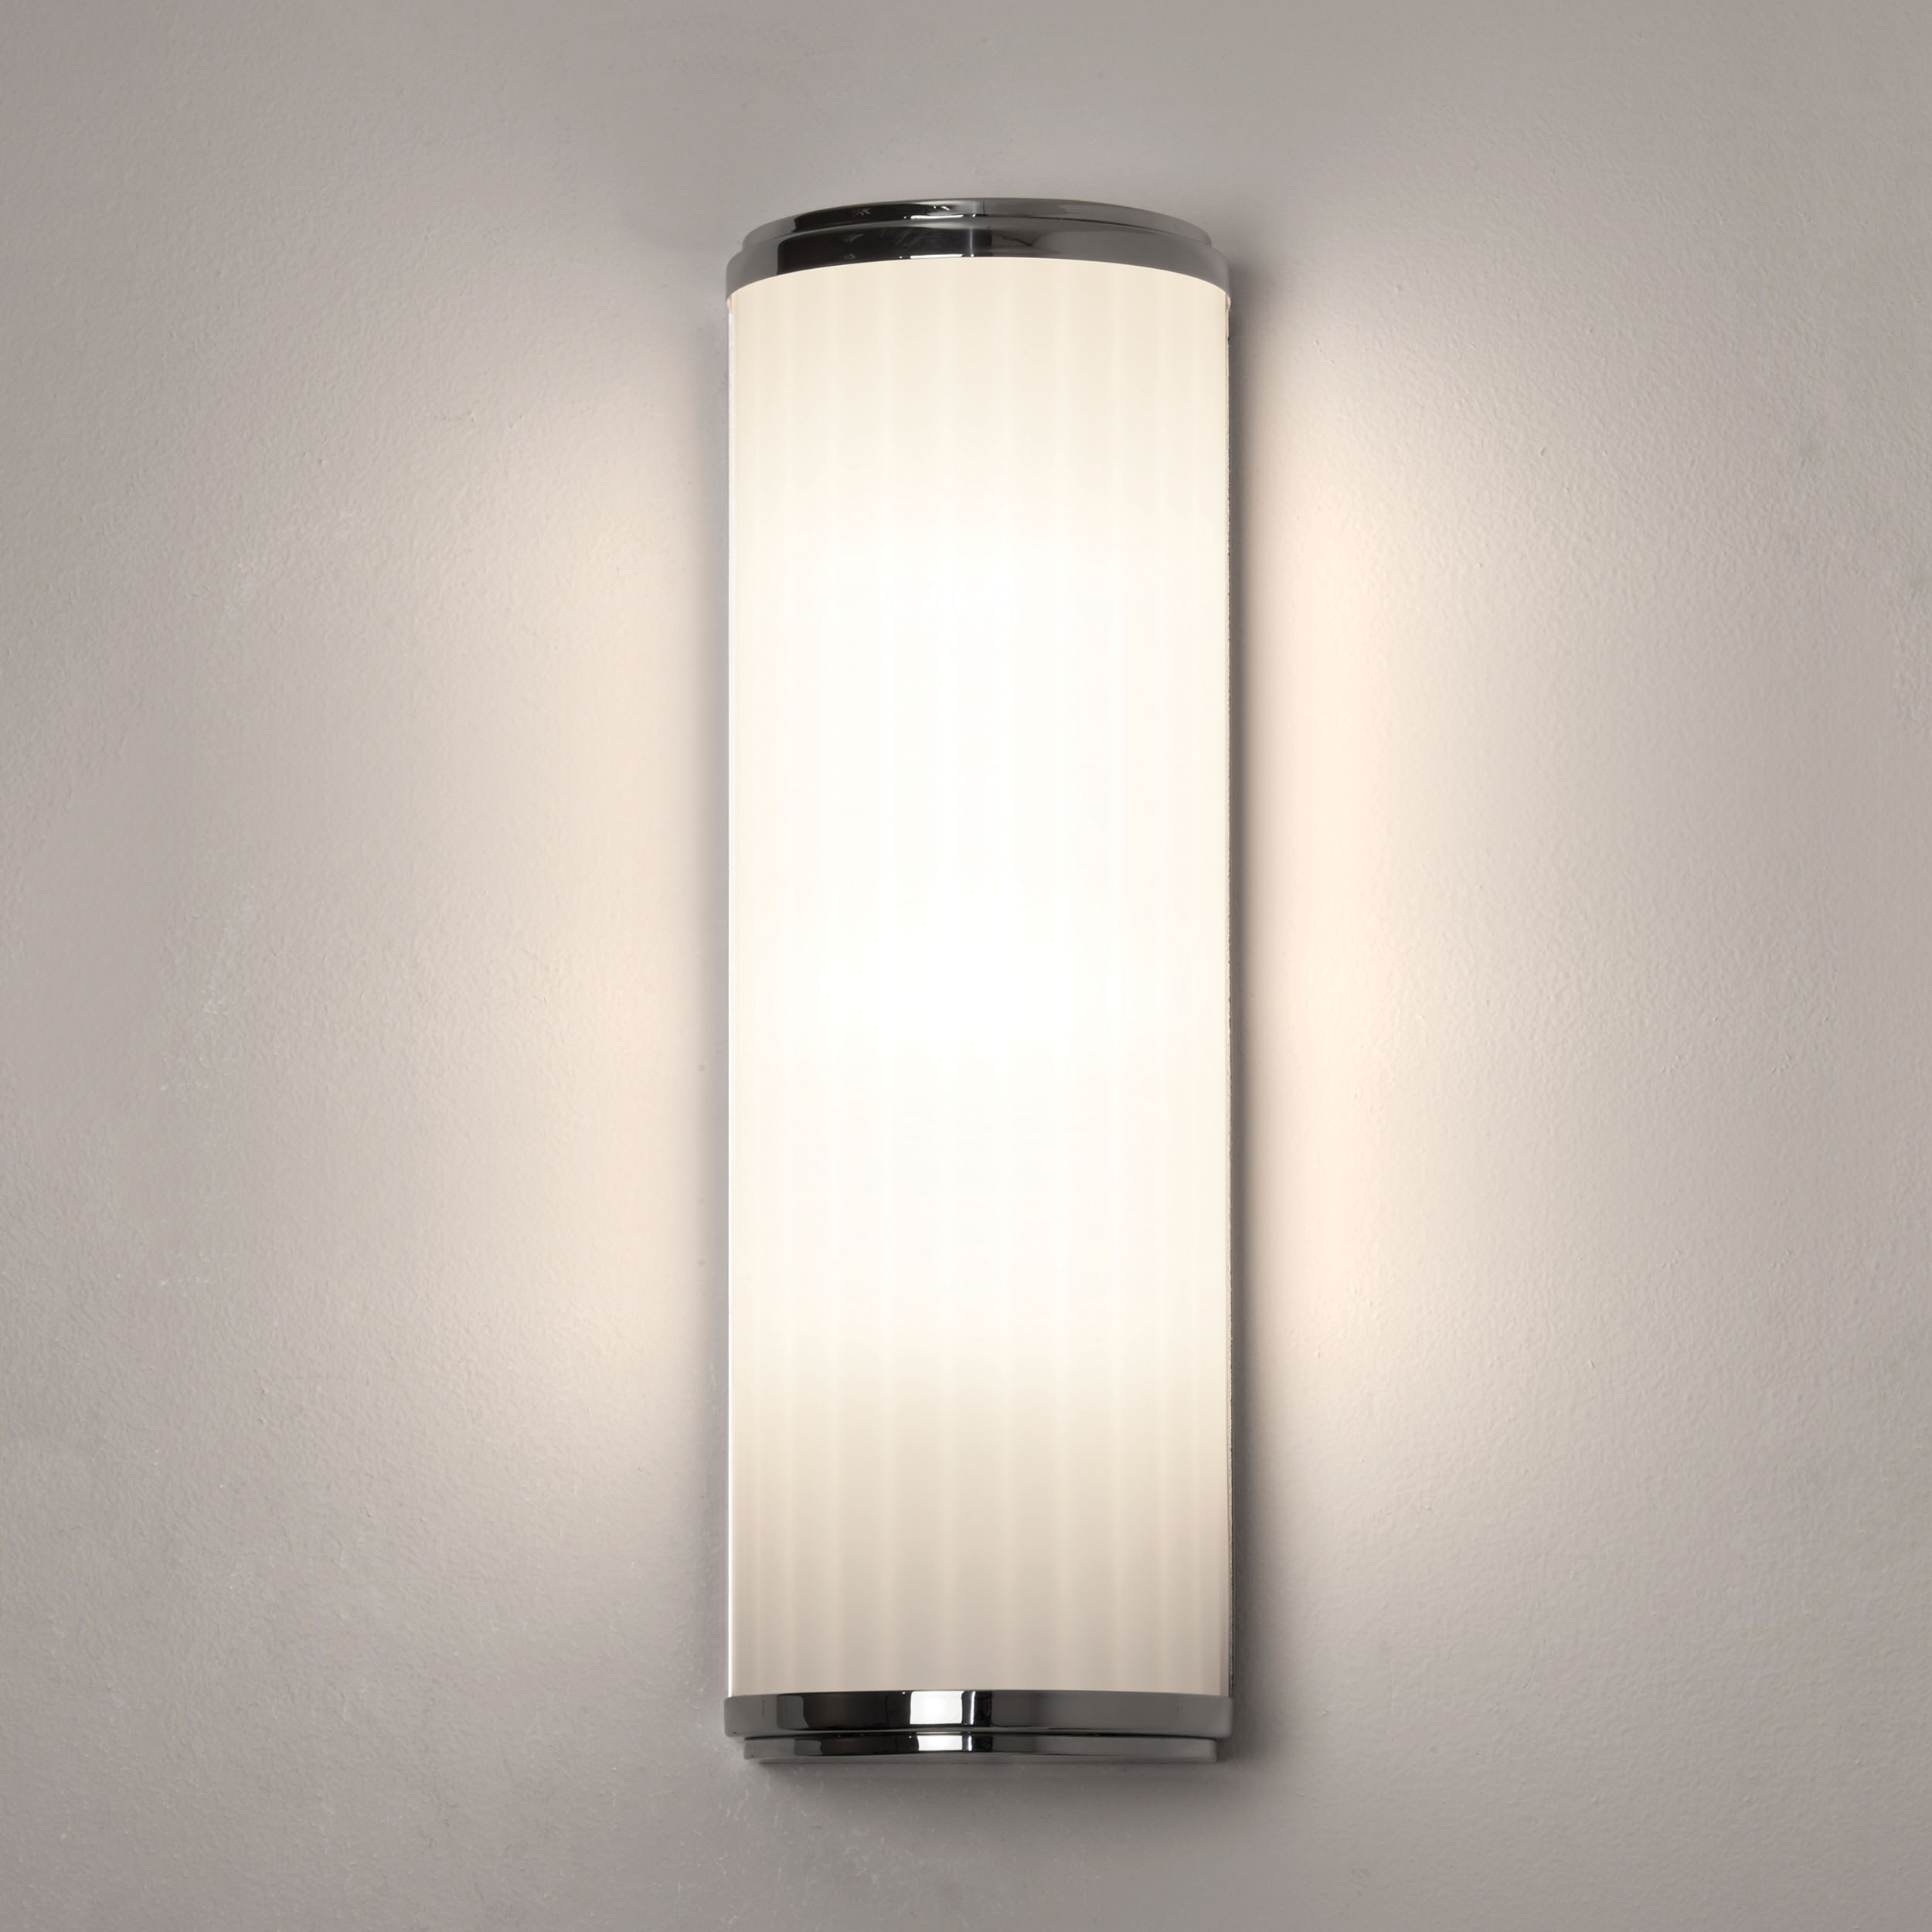 Astro monza 400 6 4w led ip44 bathroom wall mirror light polished chrome glass liminaires Polished chrome bathroom mirrors